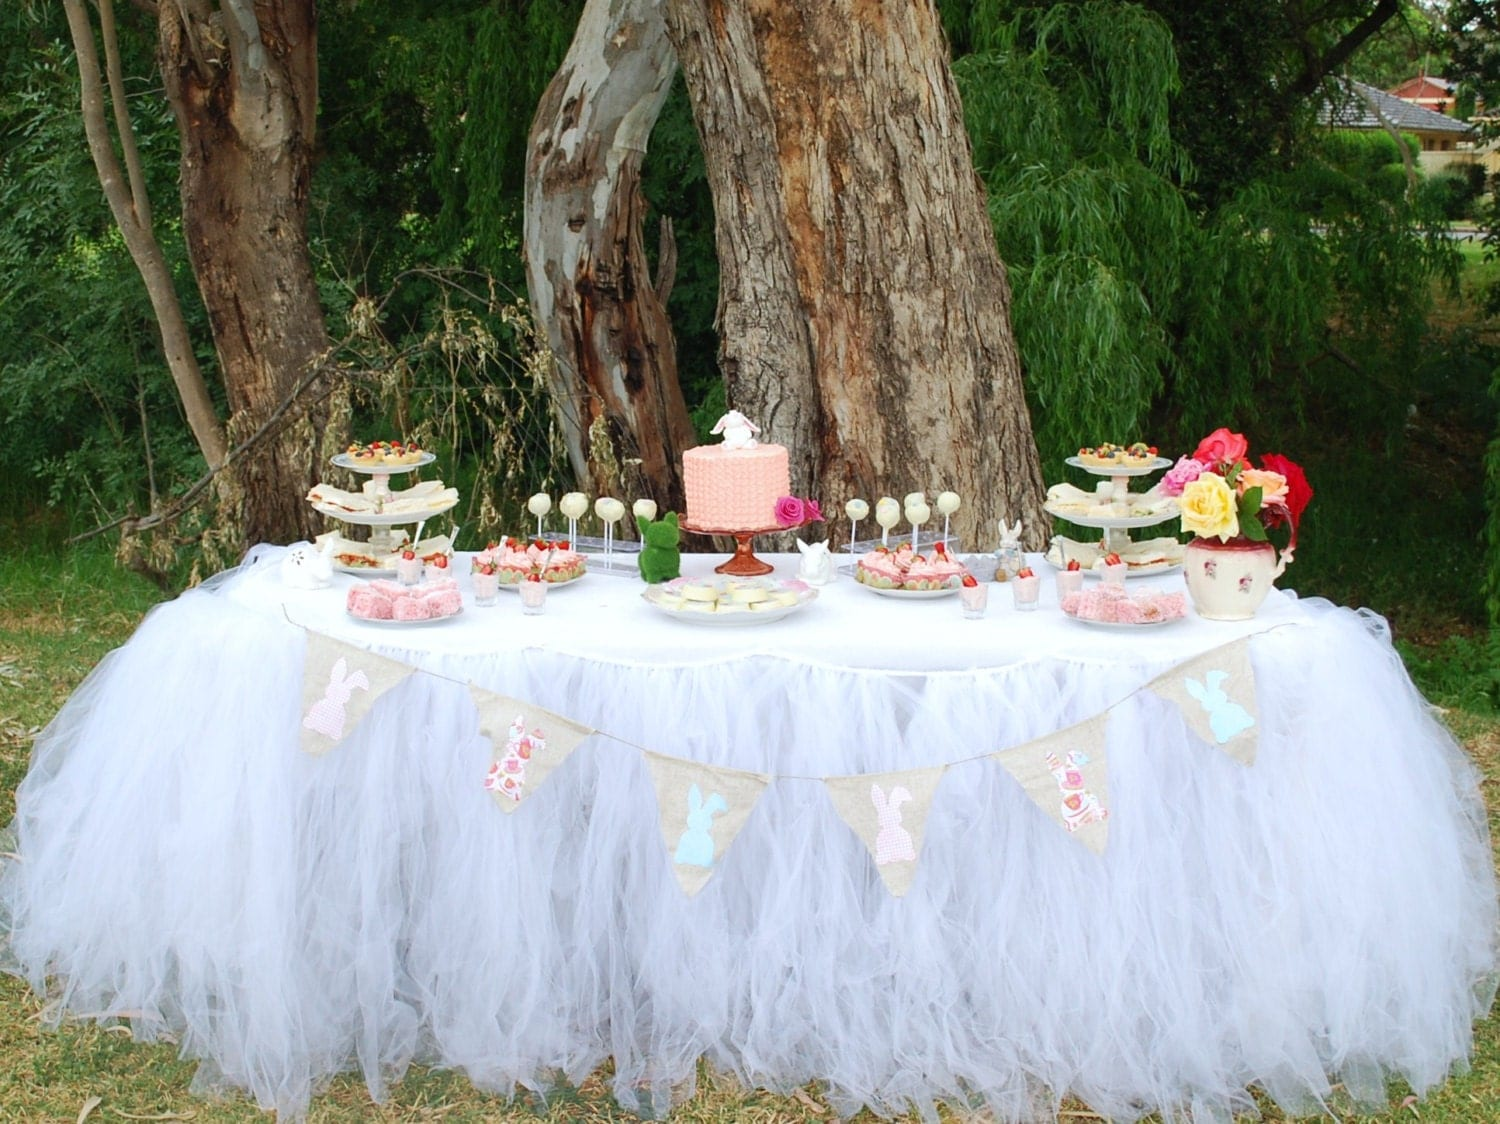 Tutu Table Skirt Candy Buffet Table Skirt Tulle Table Skirt